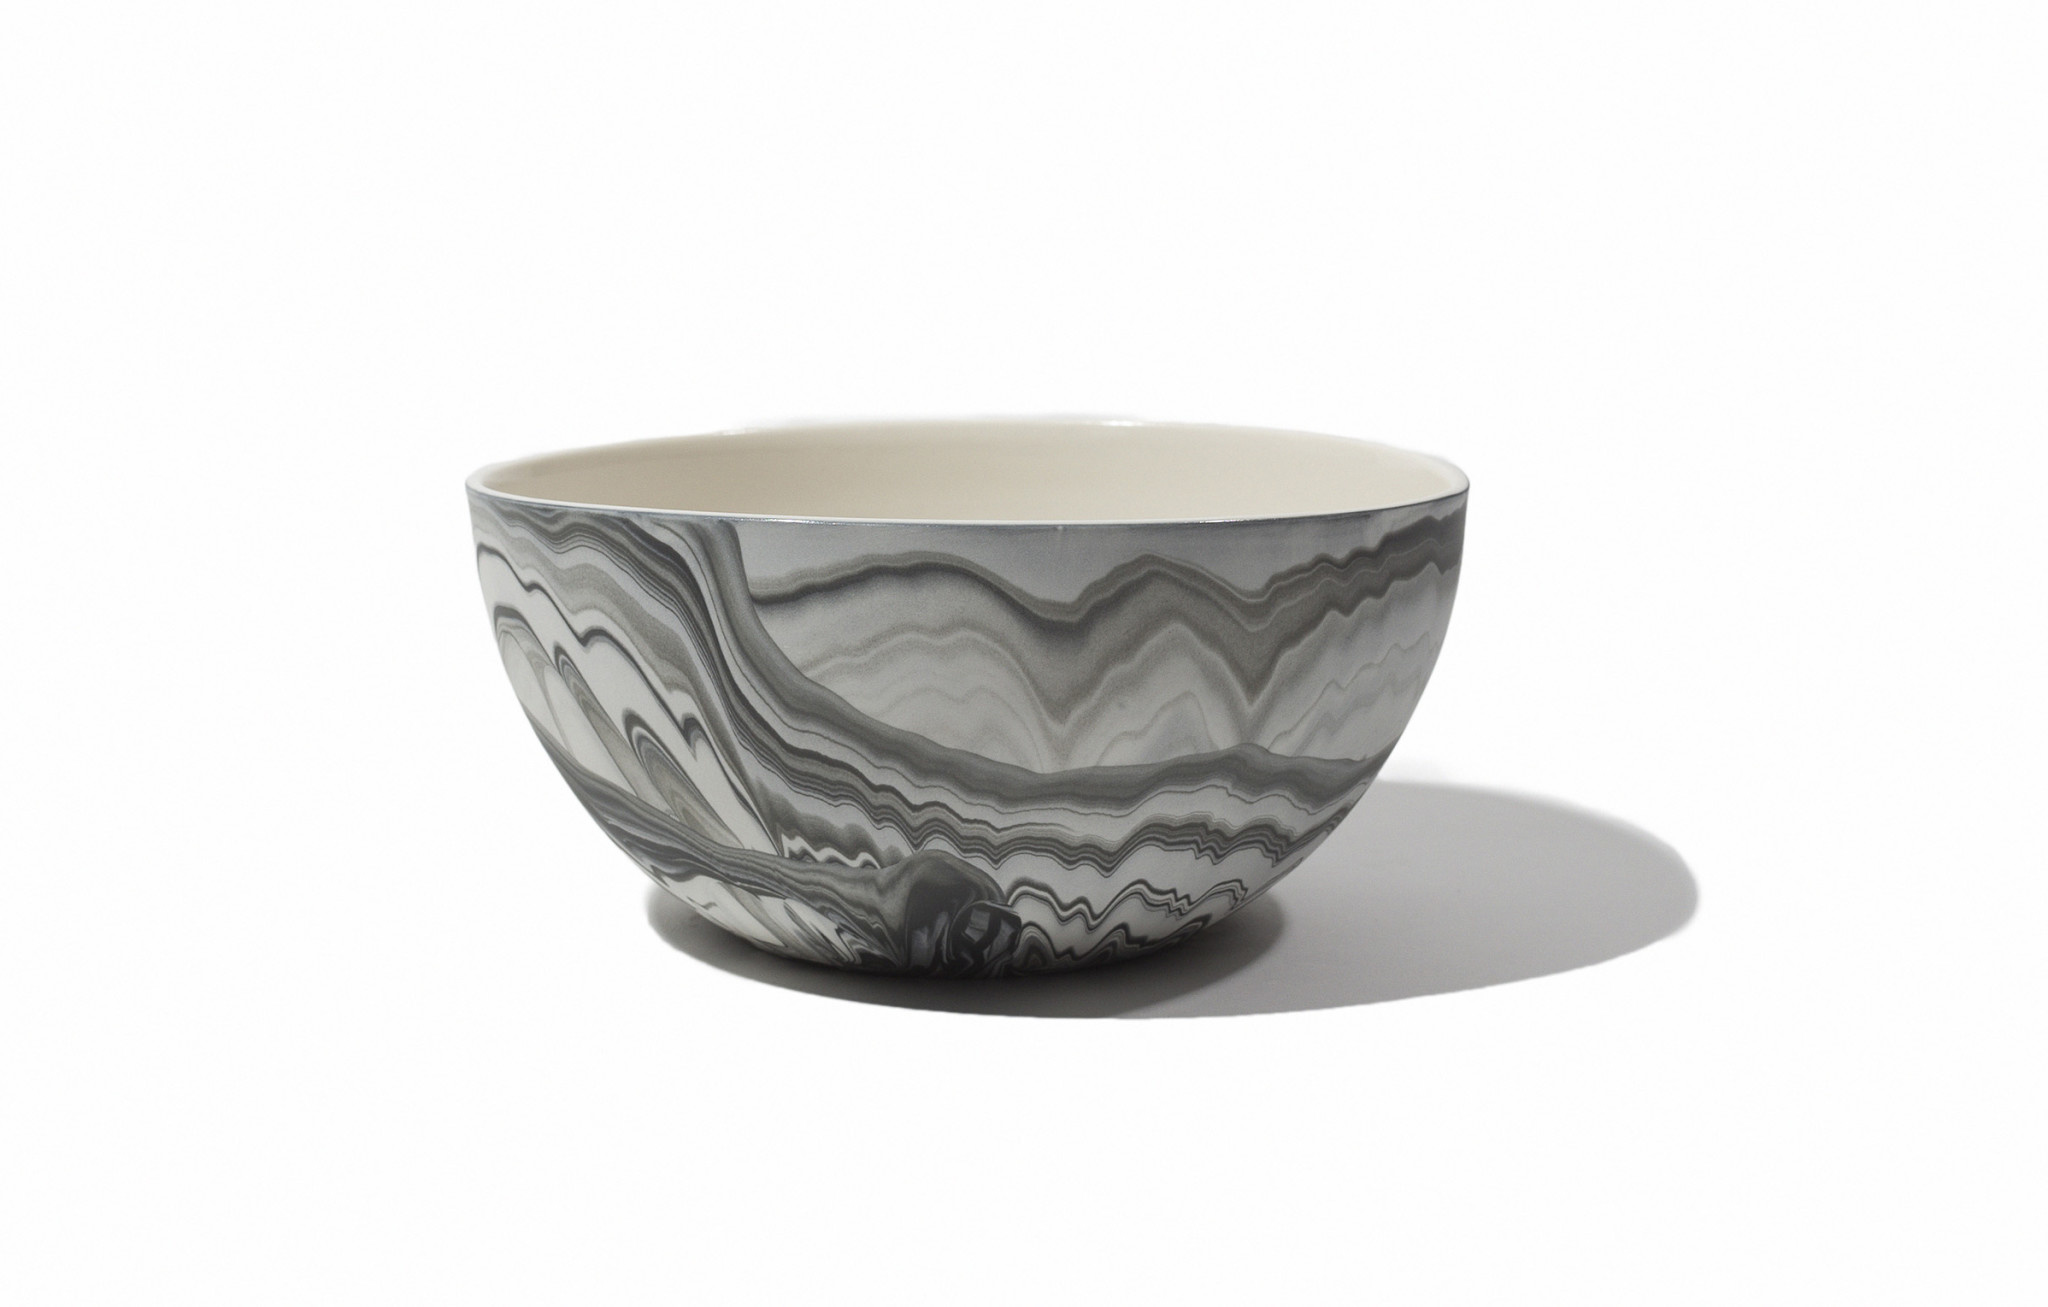 Andrew Molleur Medium Marbled Serving Bowl